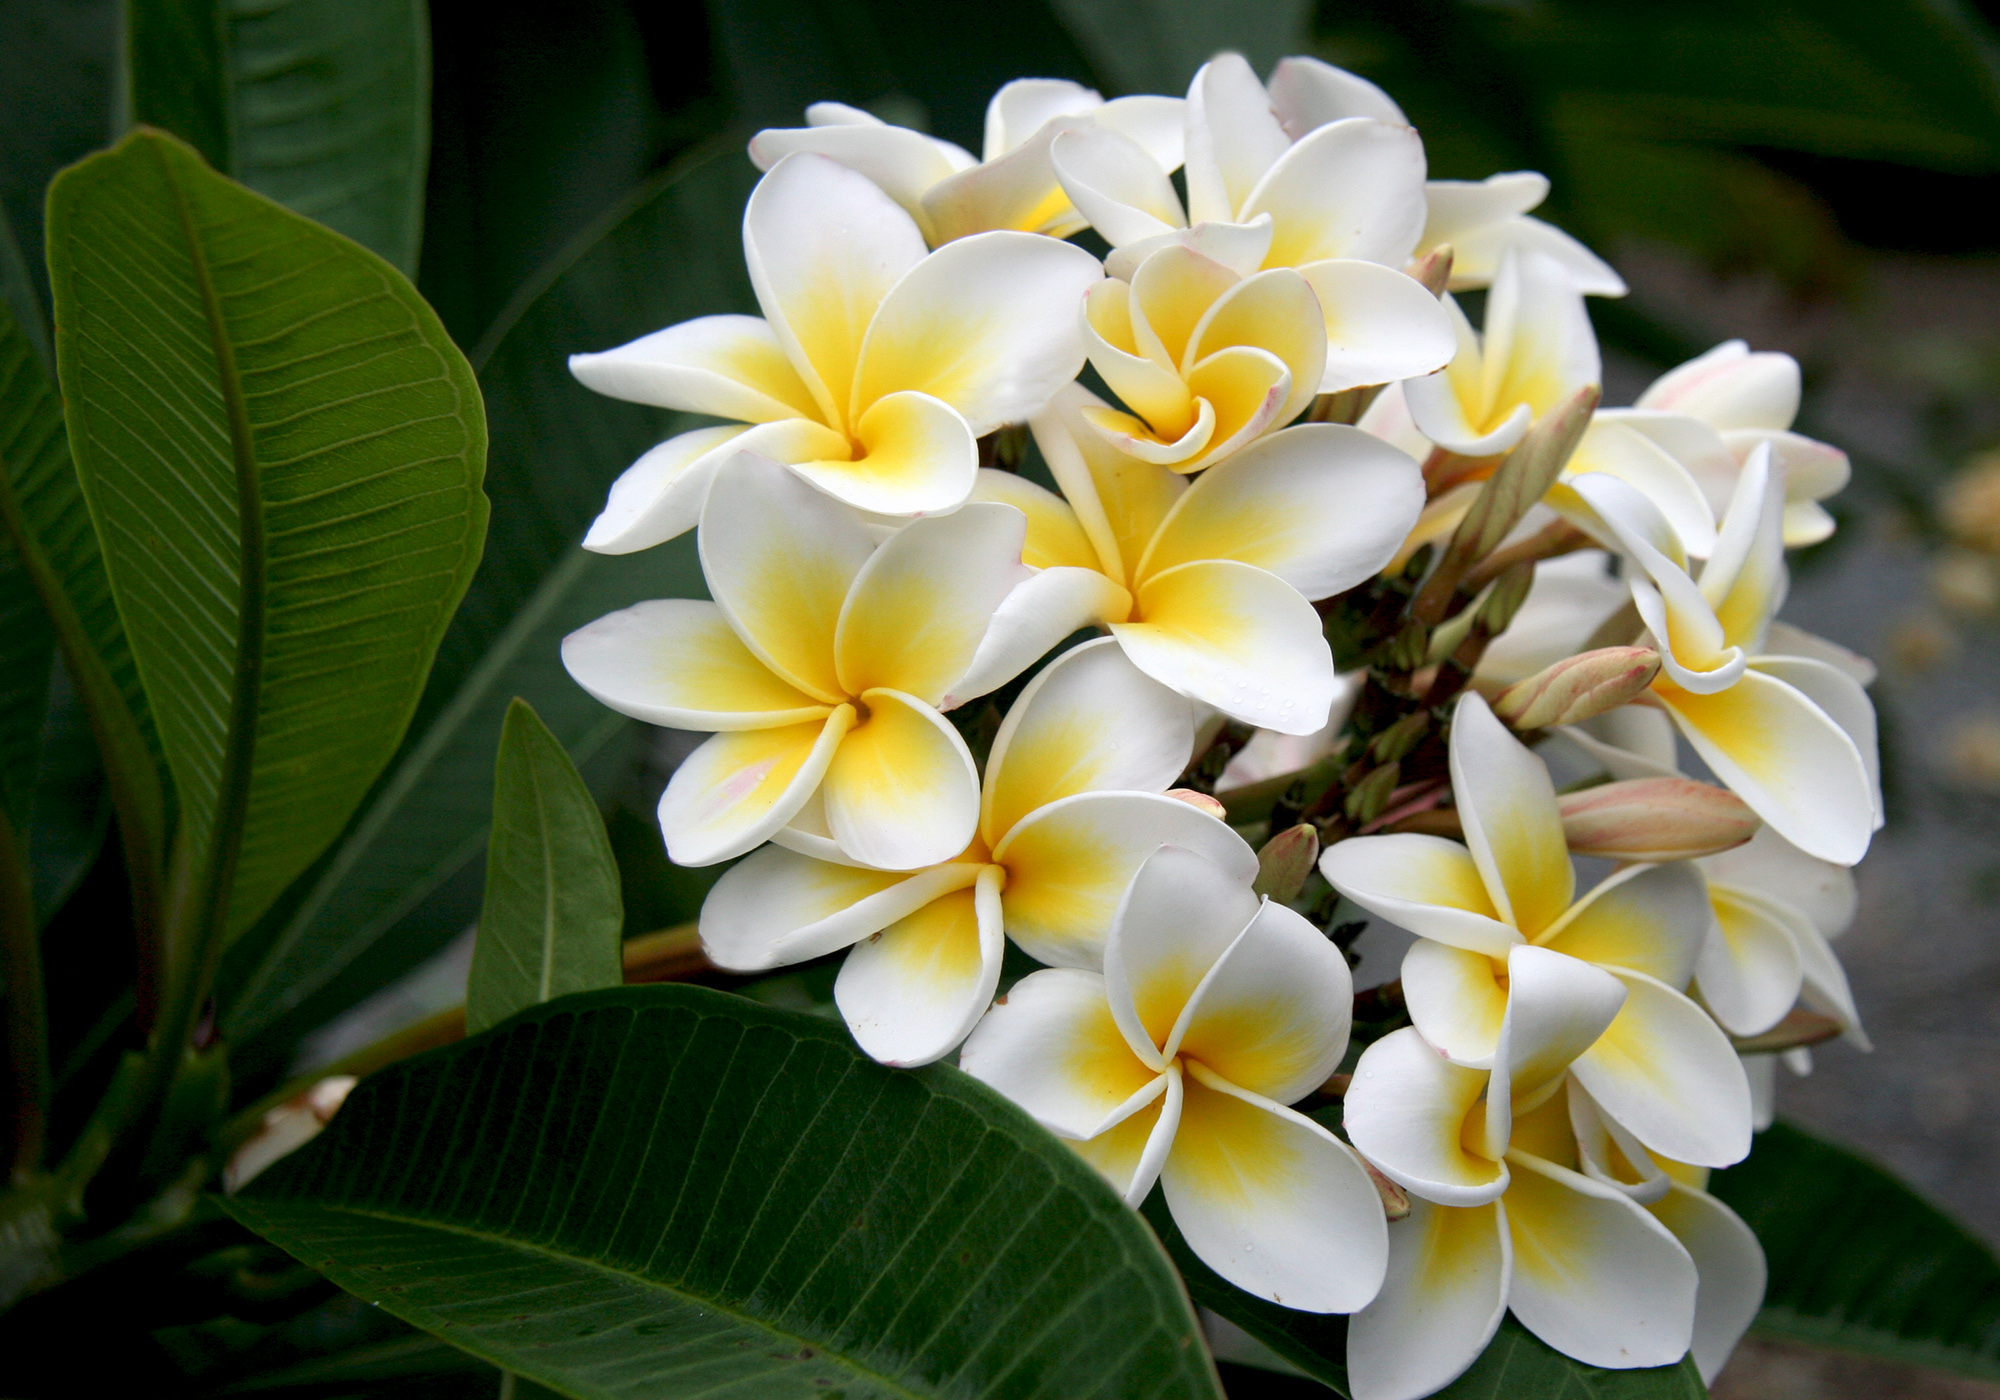 Flowers images White Plumeria HD wallpaper and background photos